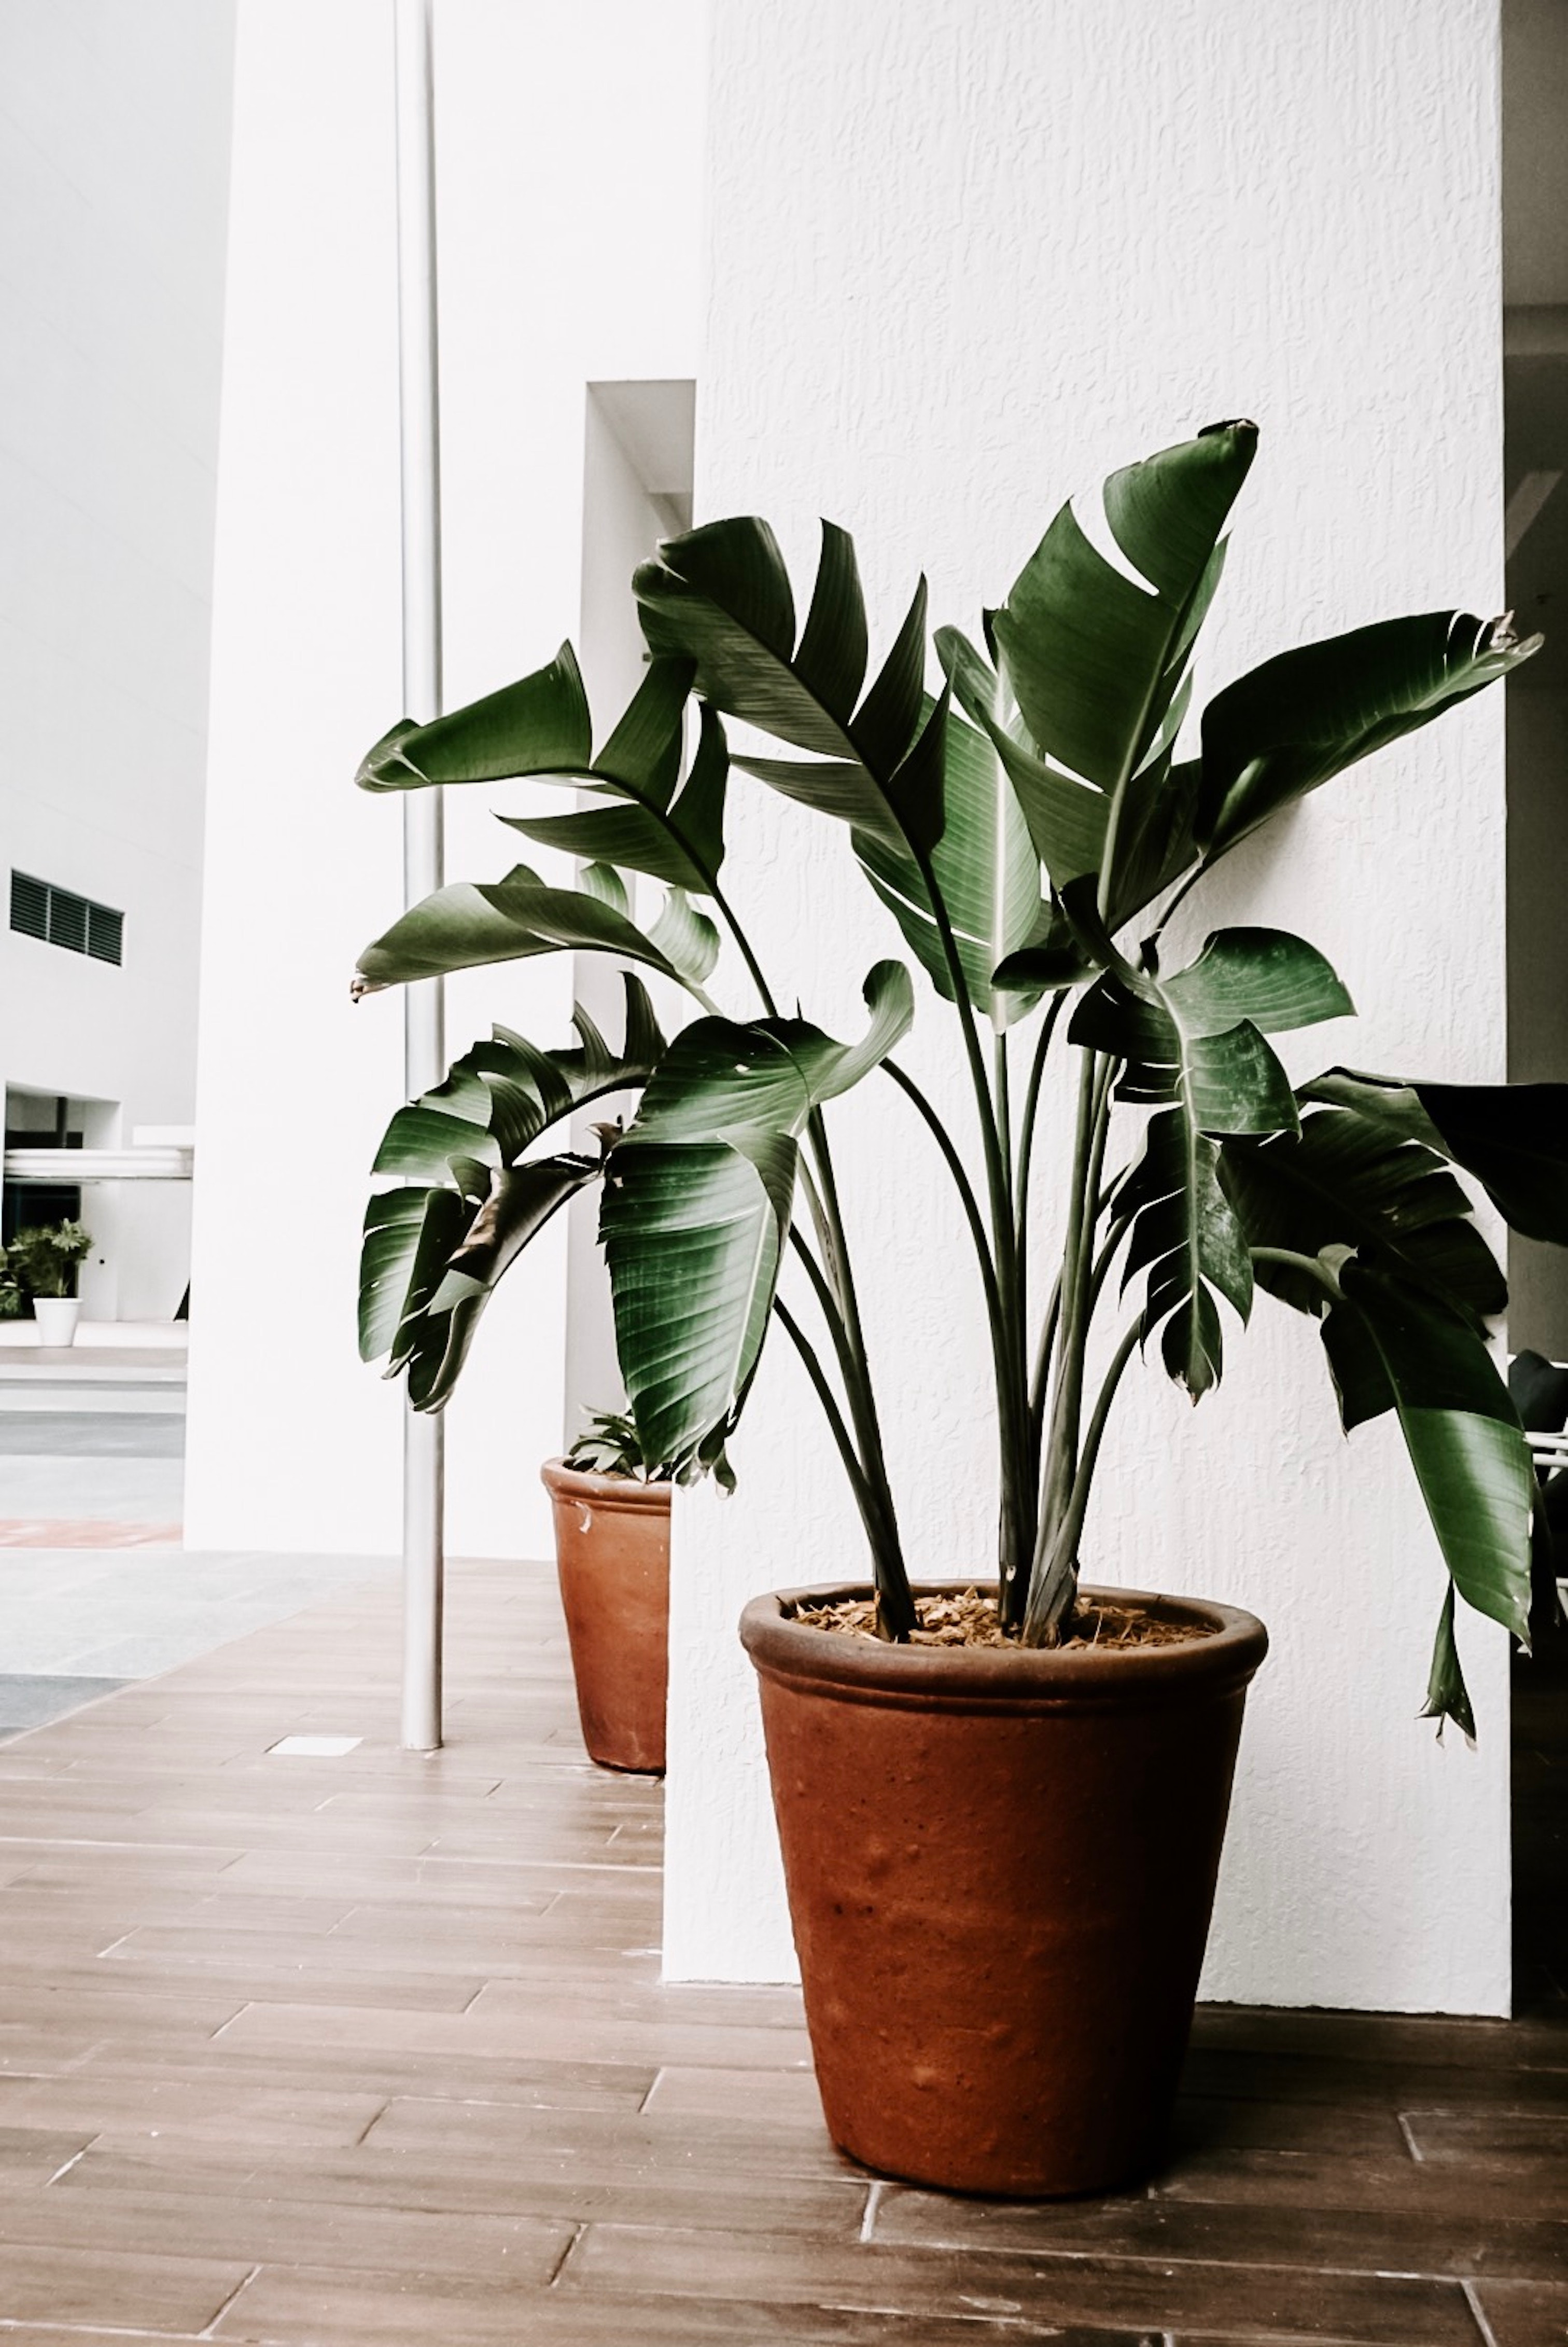 home decor trends, spring 2019, sustainable decor